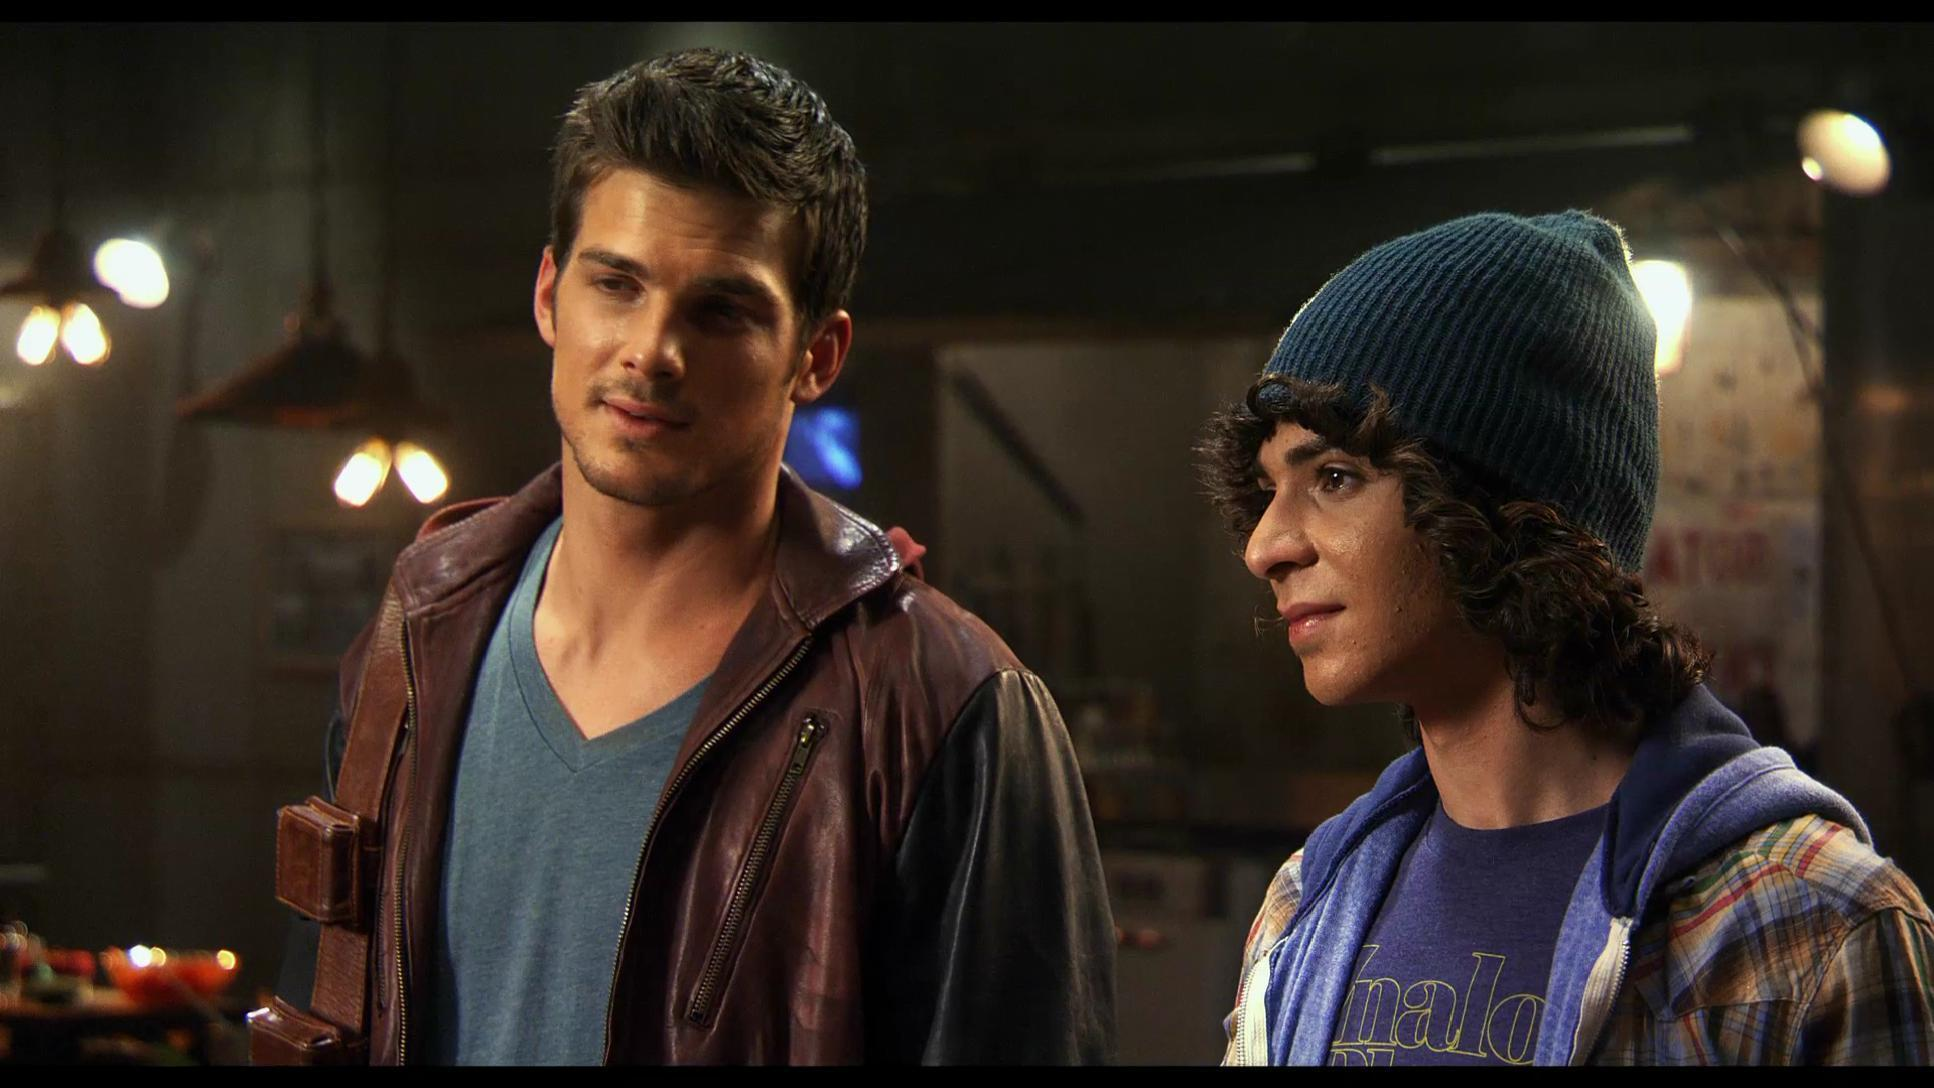 step up 3 first round red hook music Step up 3 first round red hook mp3 256 kbps download | play step up 3d (2010 movie) this is a music search engine and does not upload or host any files on it's.